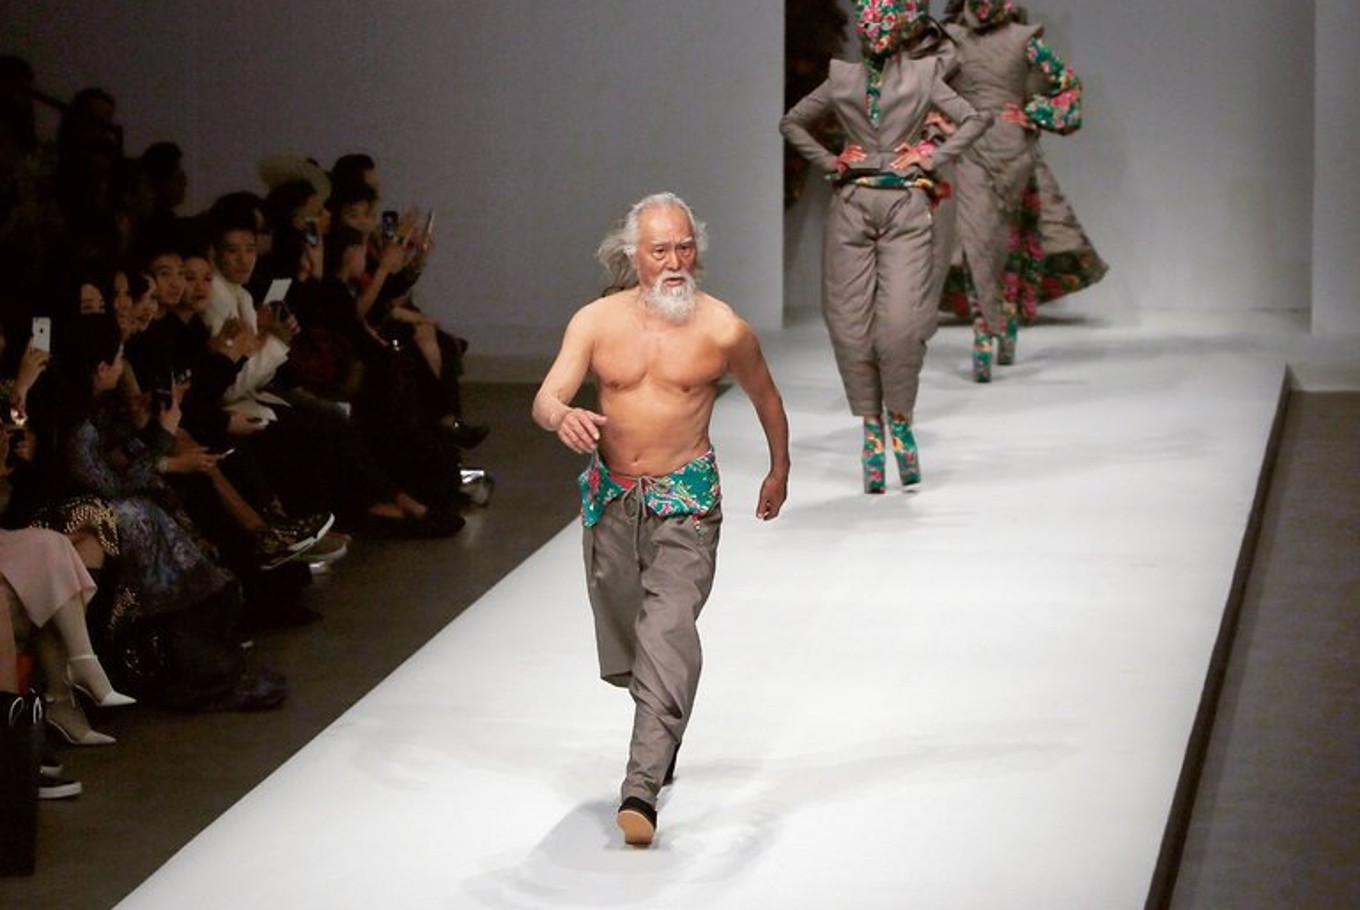 'China's hottest grandpa' is 80... and still going strong